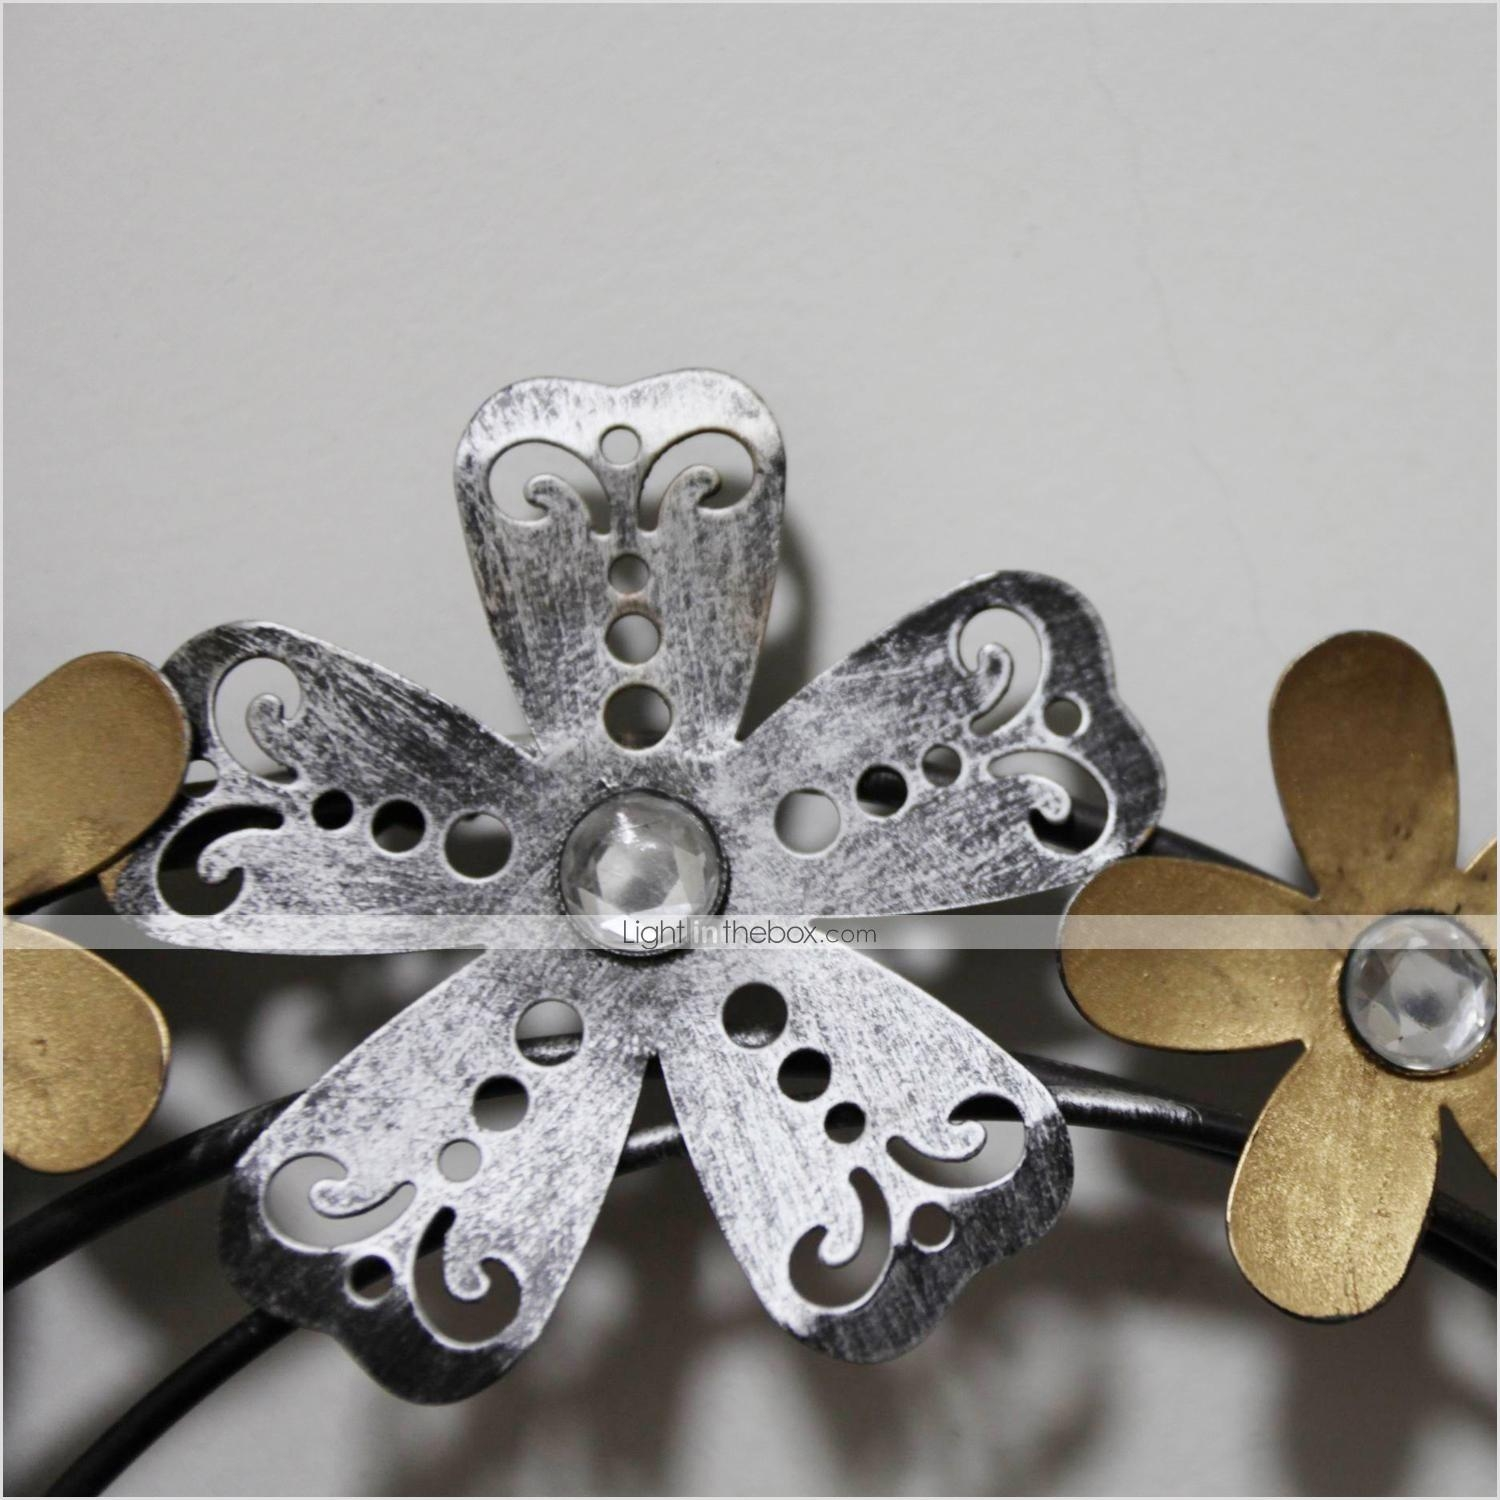 Heart Shaped Metal Wall Art Photos That Really Gorgeous – Desainnow Intended For Heart Shaped Metal Wall Art (View 7 of 20)